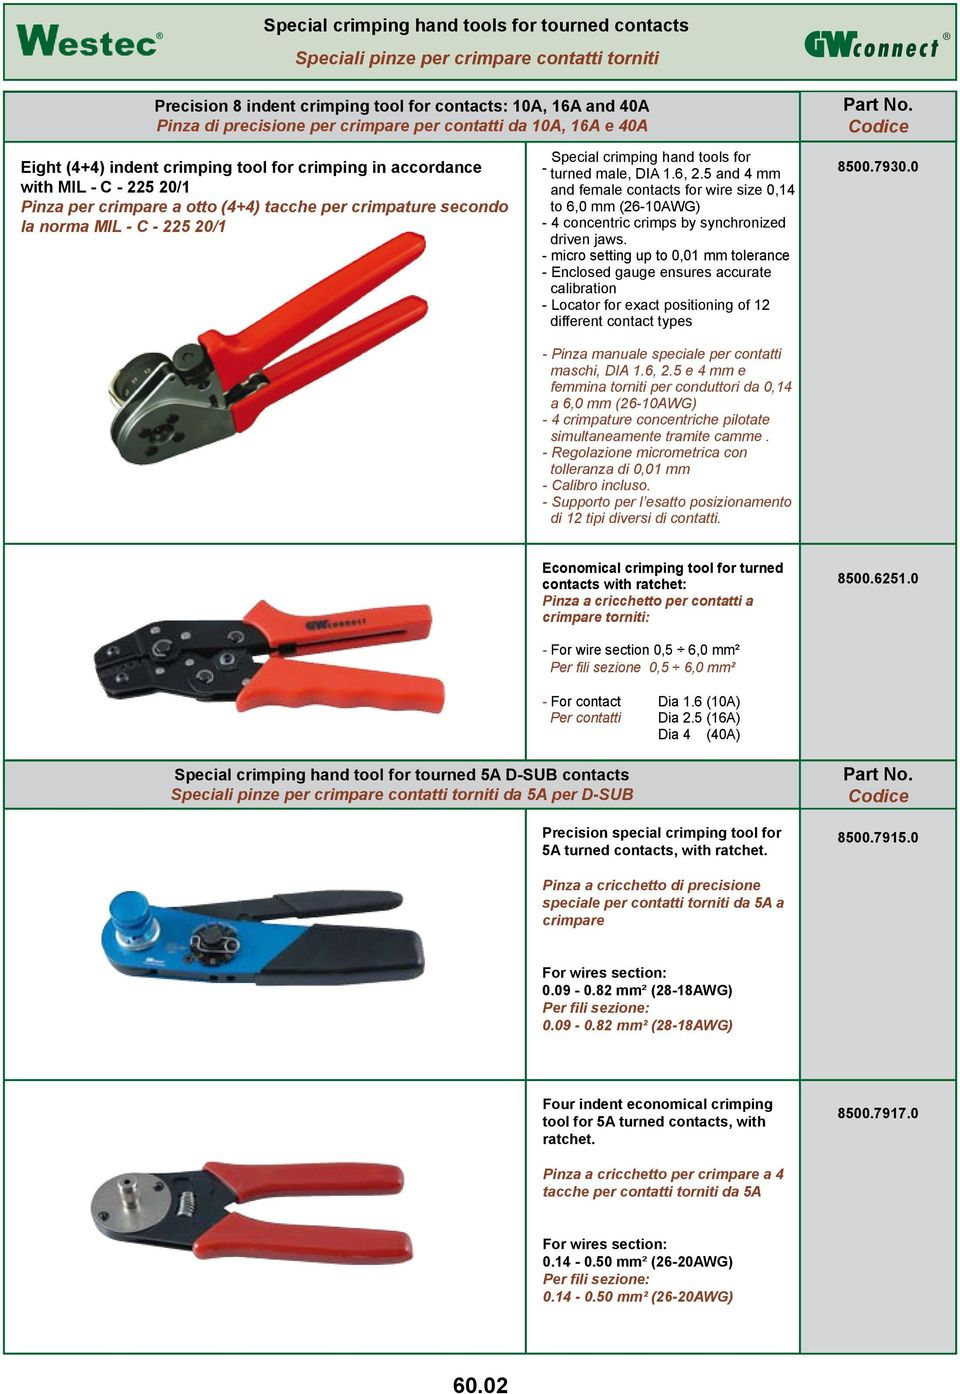 20/1 Special crimping hand tools for - turned male, DIA 1.6, 2.5 and 4 mm and female contacts for wire size 0,14 to 6,0 mm (26-10AWG) - 4 concentric crimps by synchronized driven jaws.